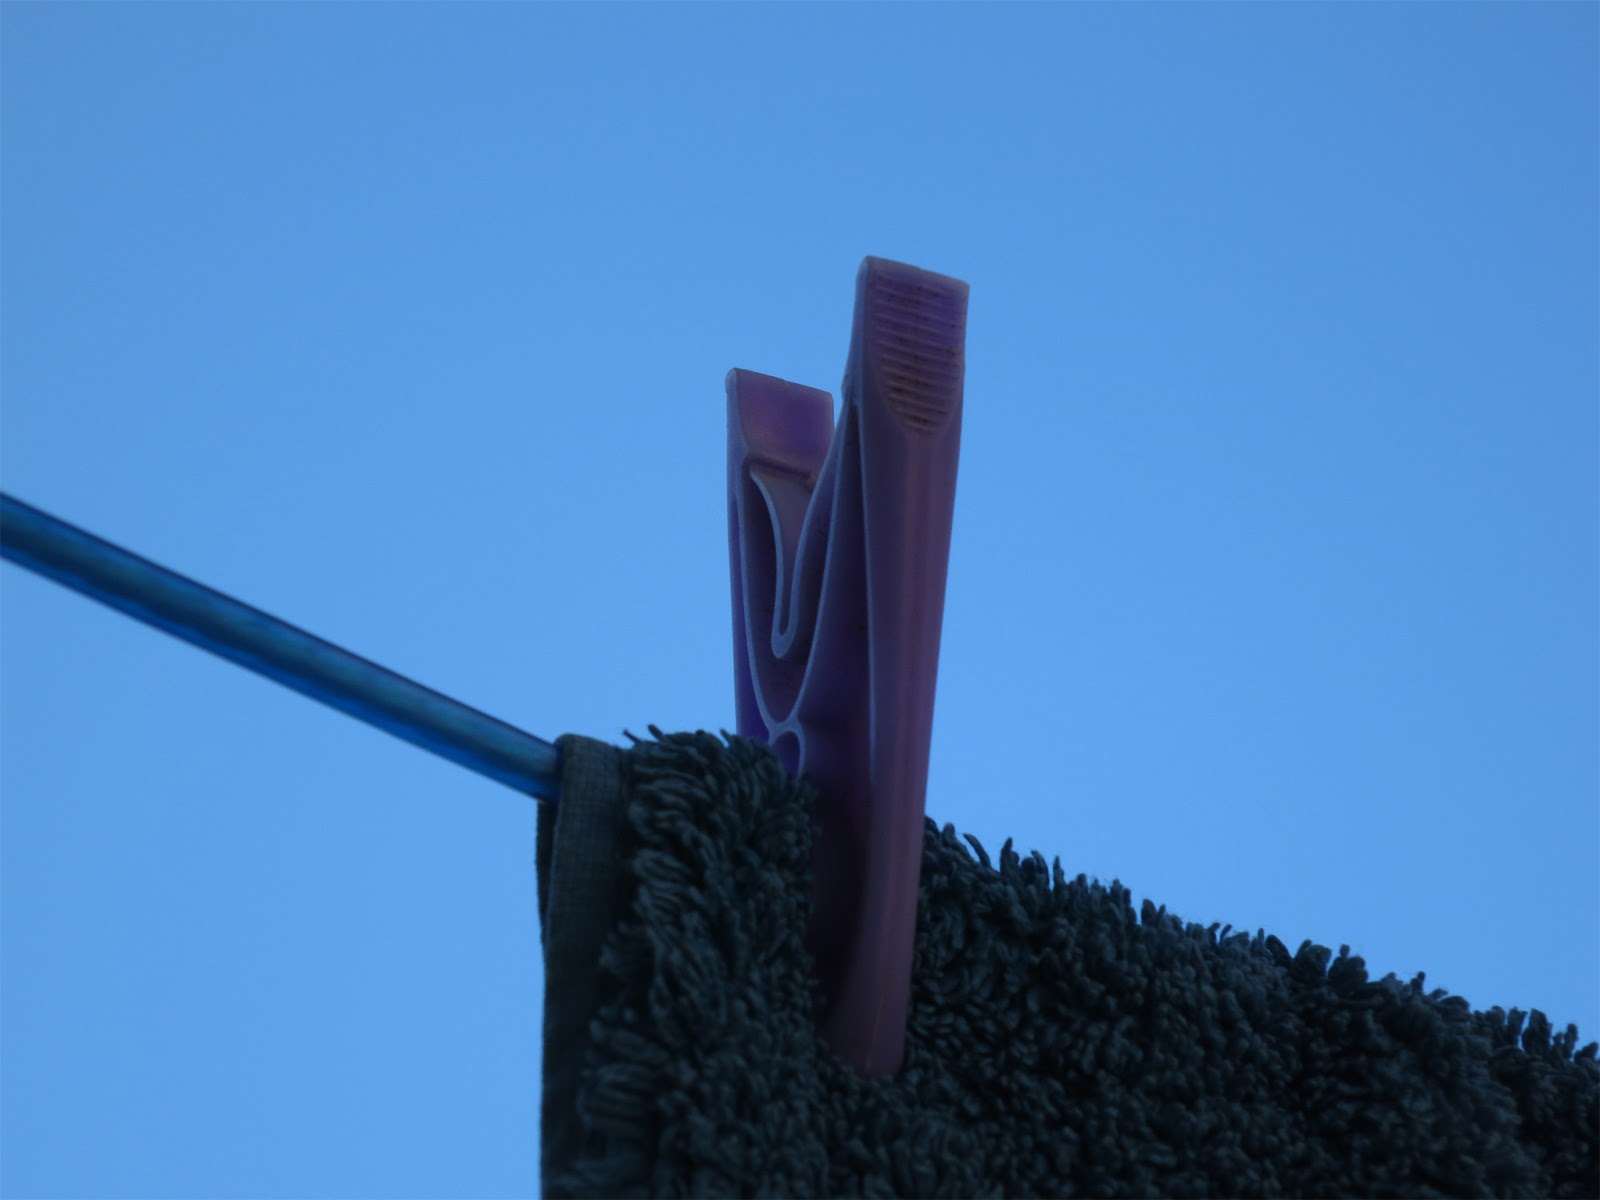 Blue peg, blue towel, blue washing line, blue sky